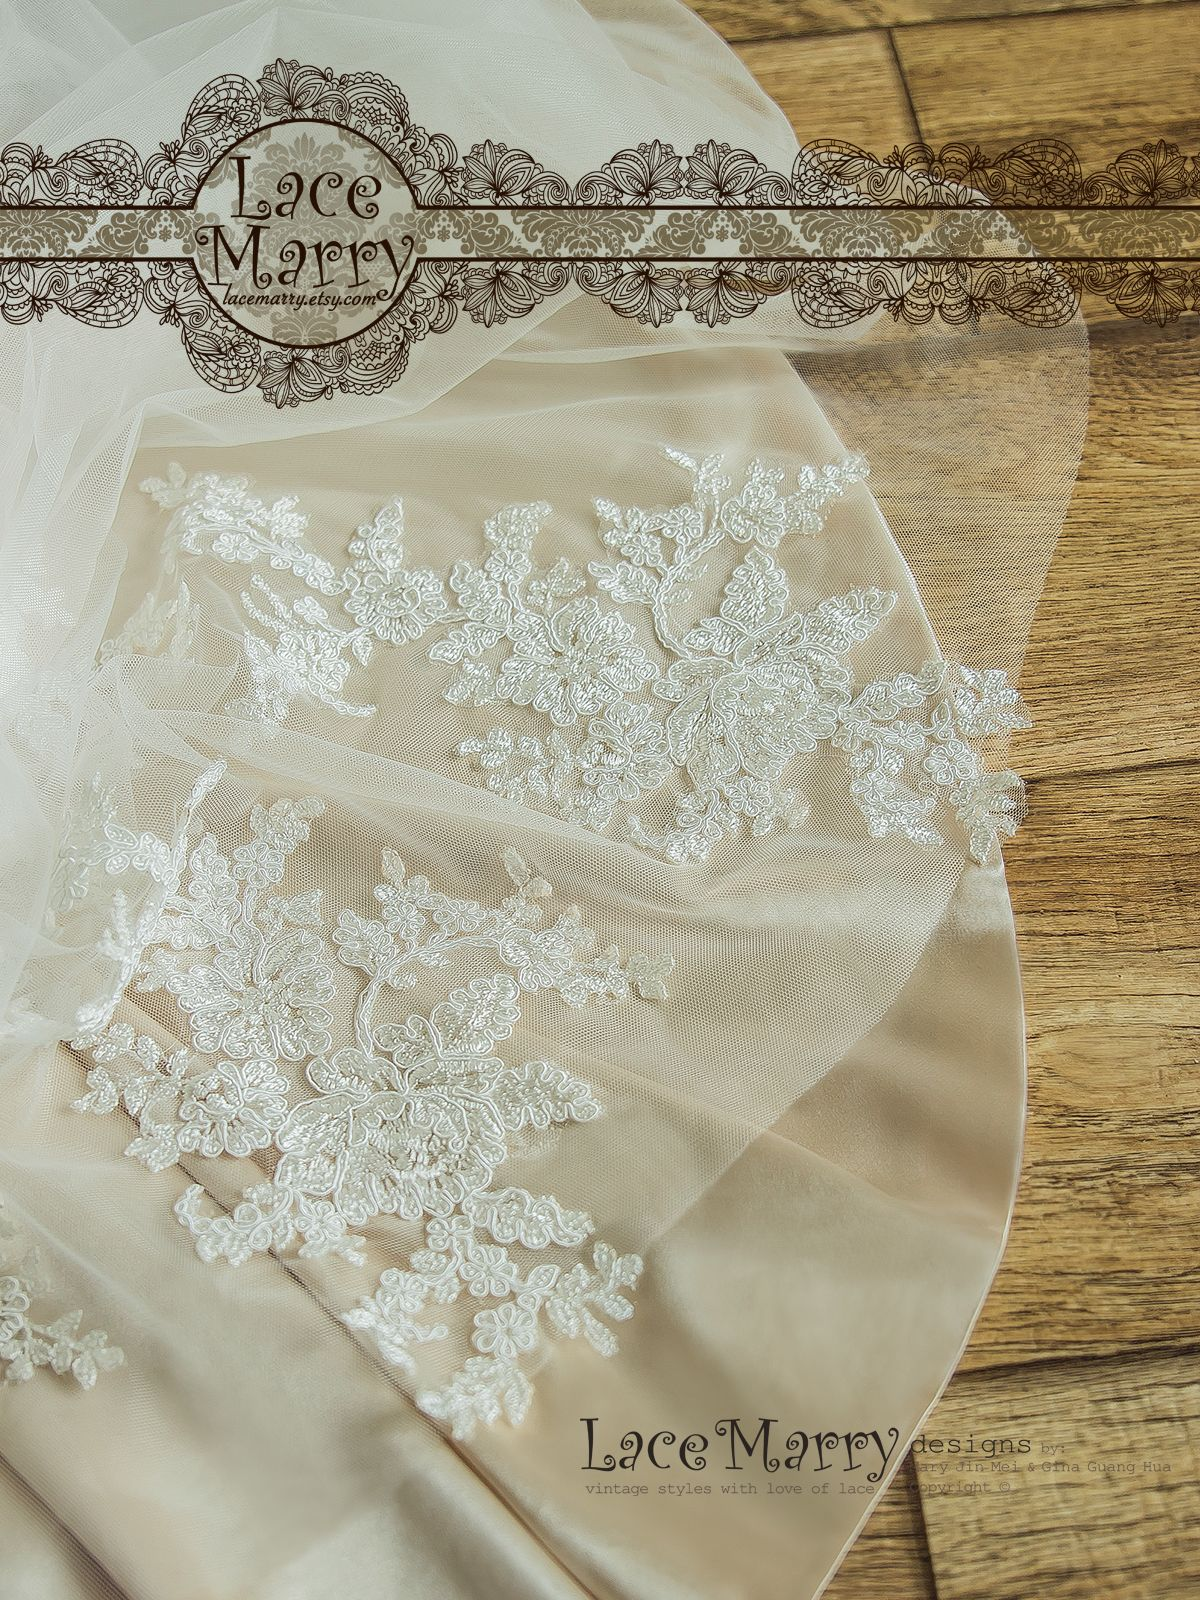 Soft Silk Satin Underlay is made in a Light Champagne shade to Emphasize the Beauty of the Lace.